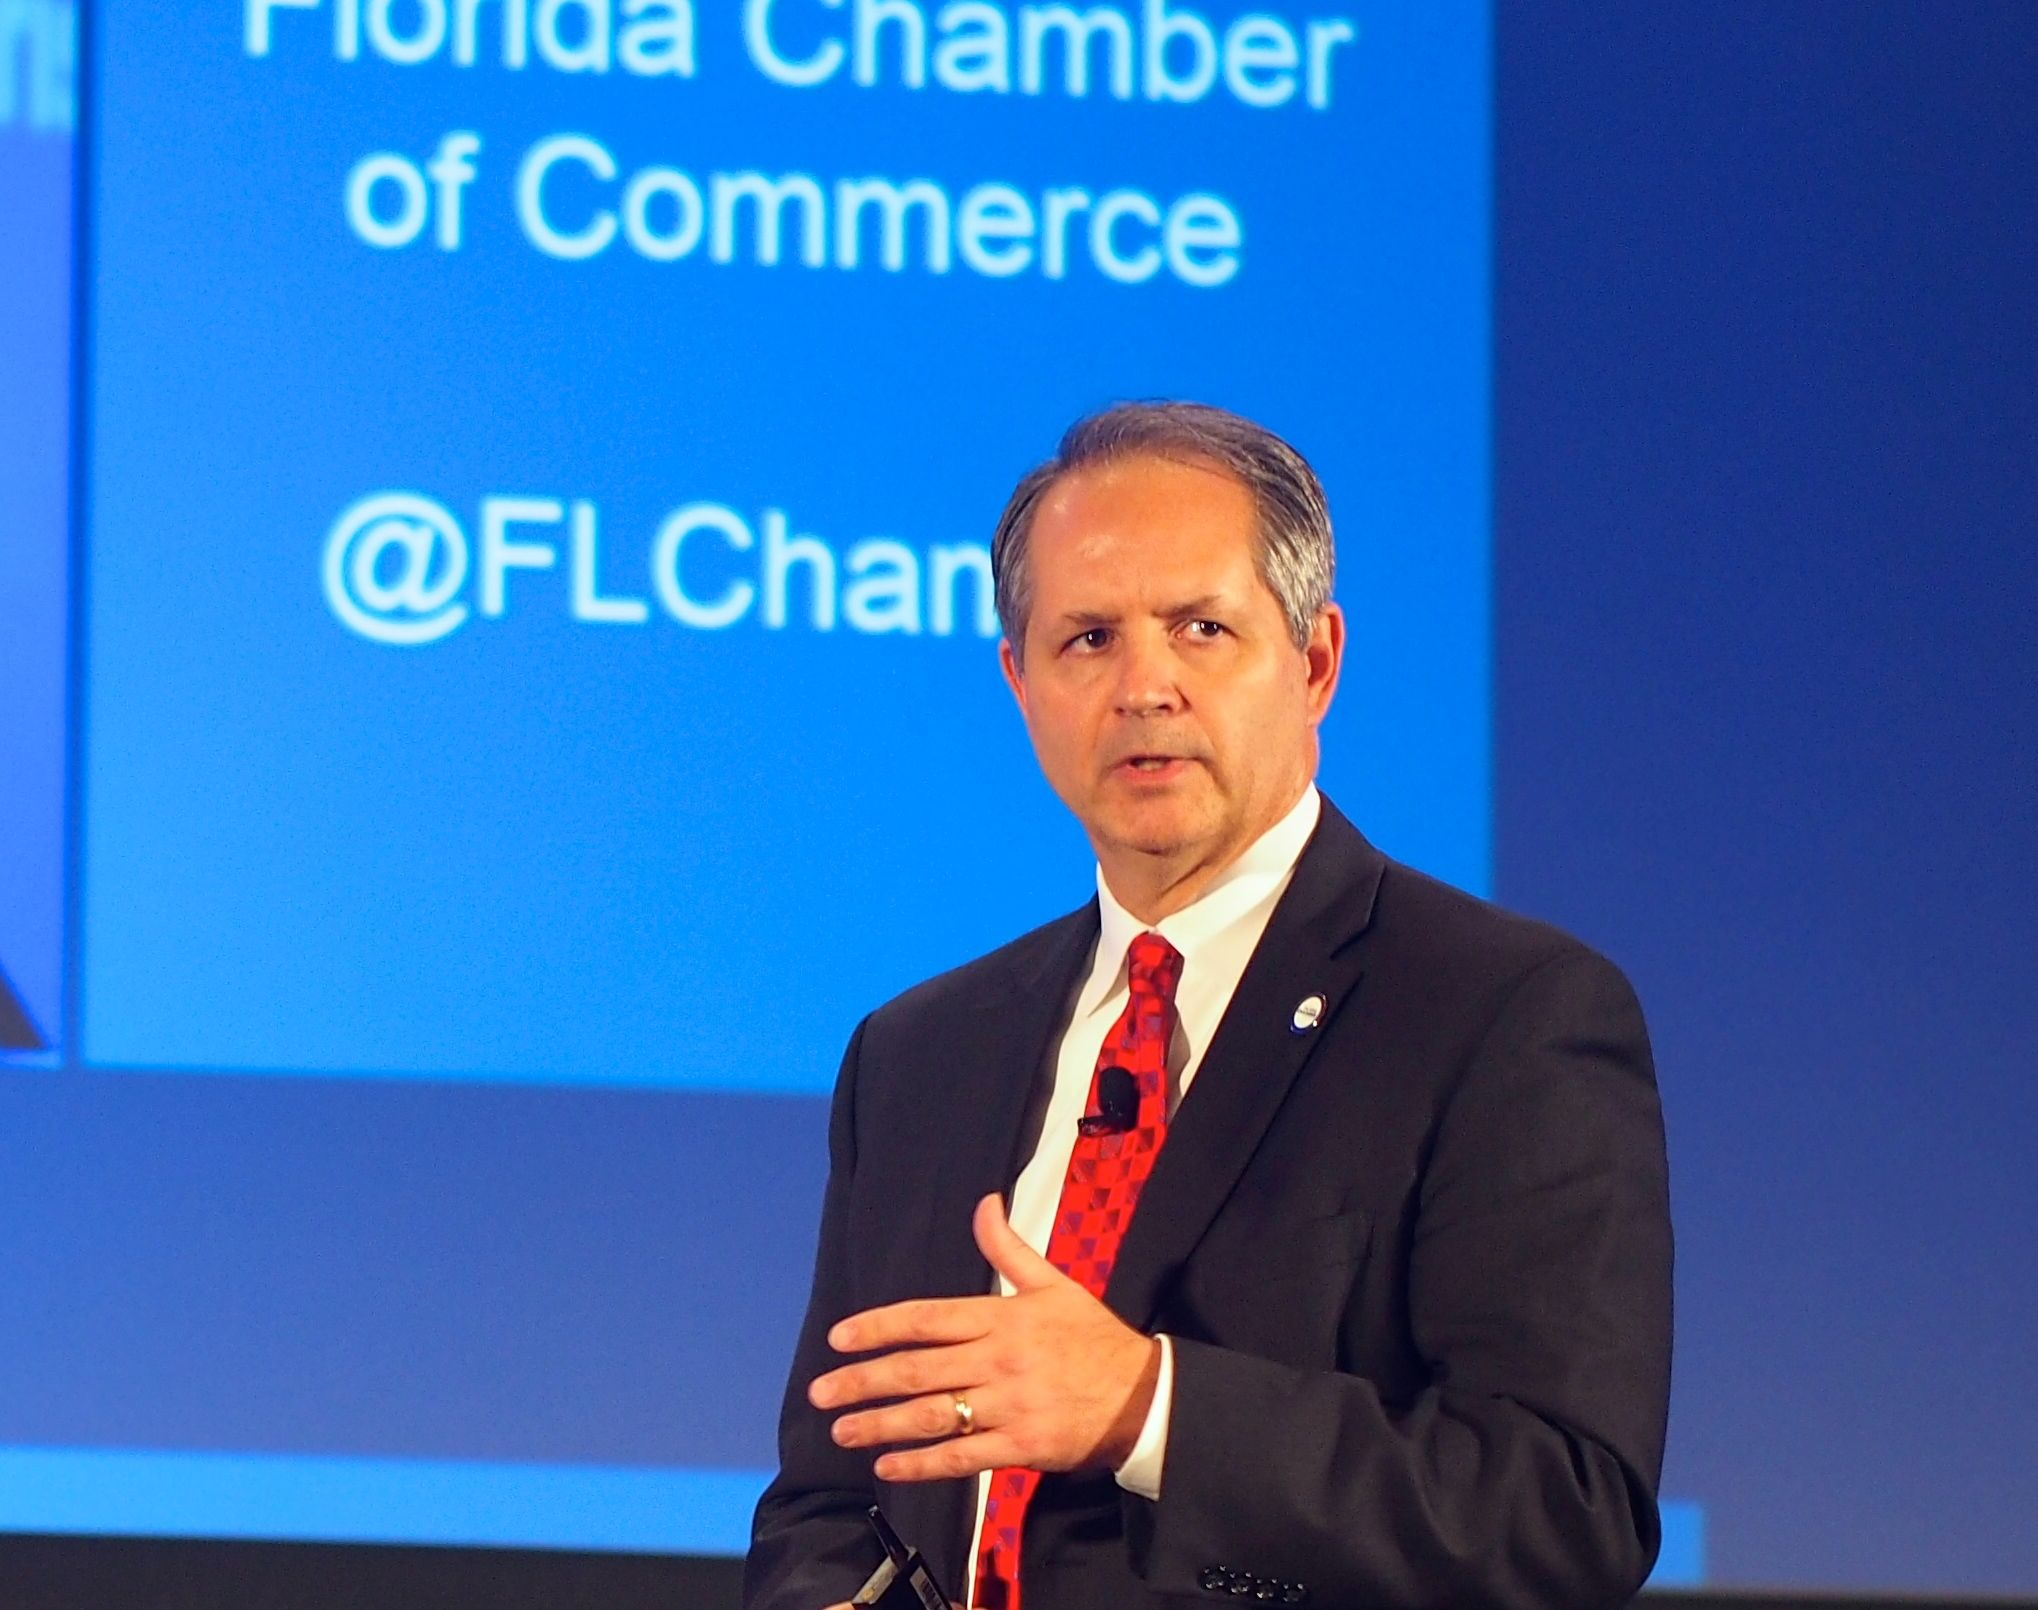 Mark-Wilson-Florida-Chamber-of-Commerce-1.jpg